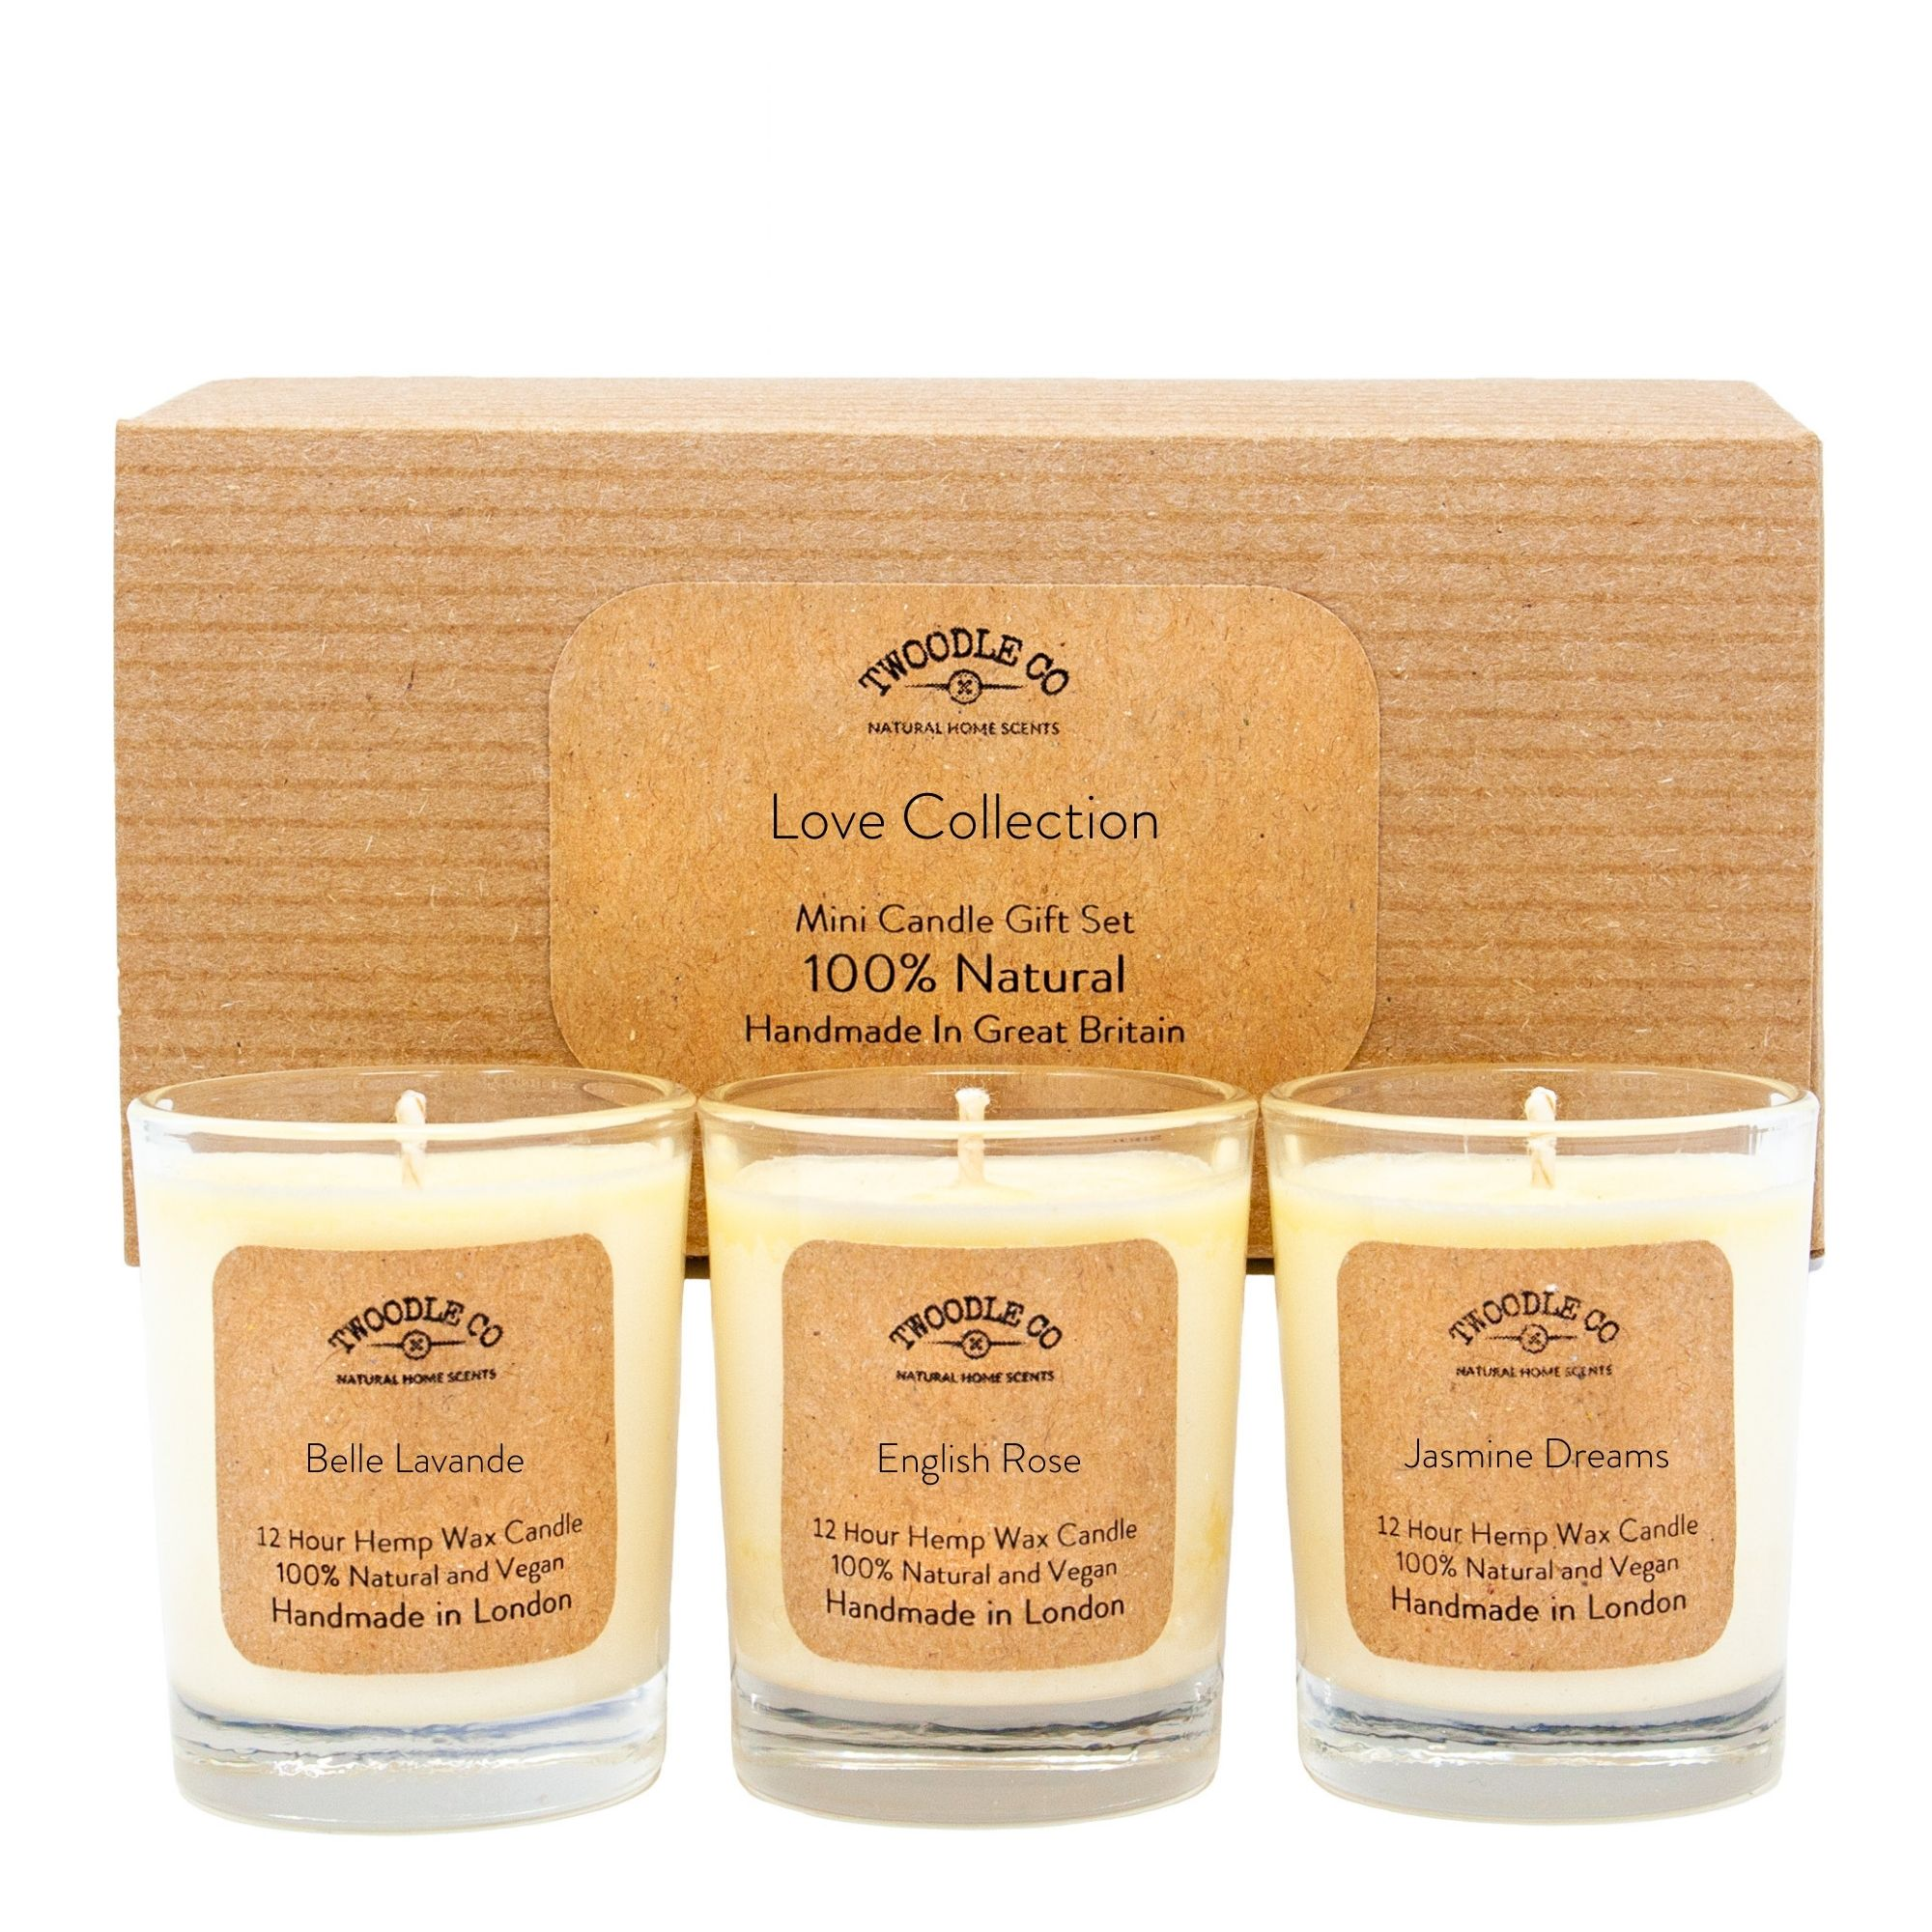 Love Collection Mini triple candle Gift Set by twoodle co natural home scents